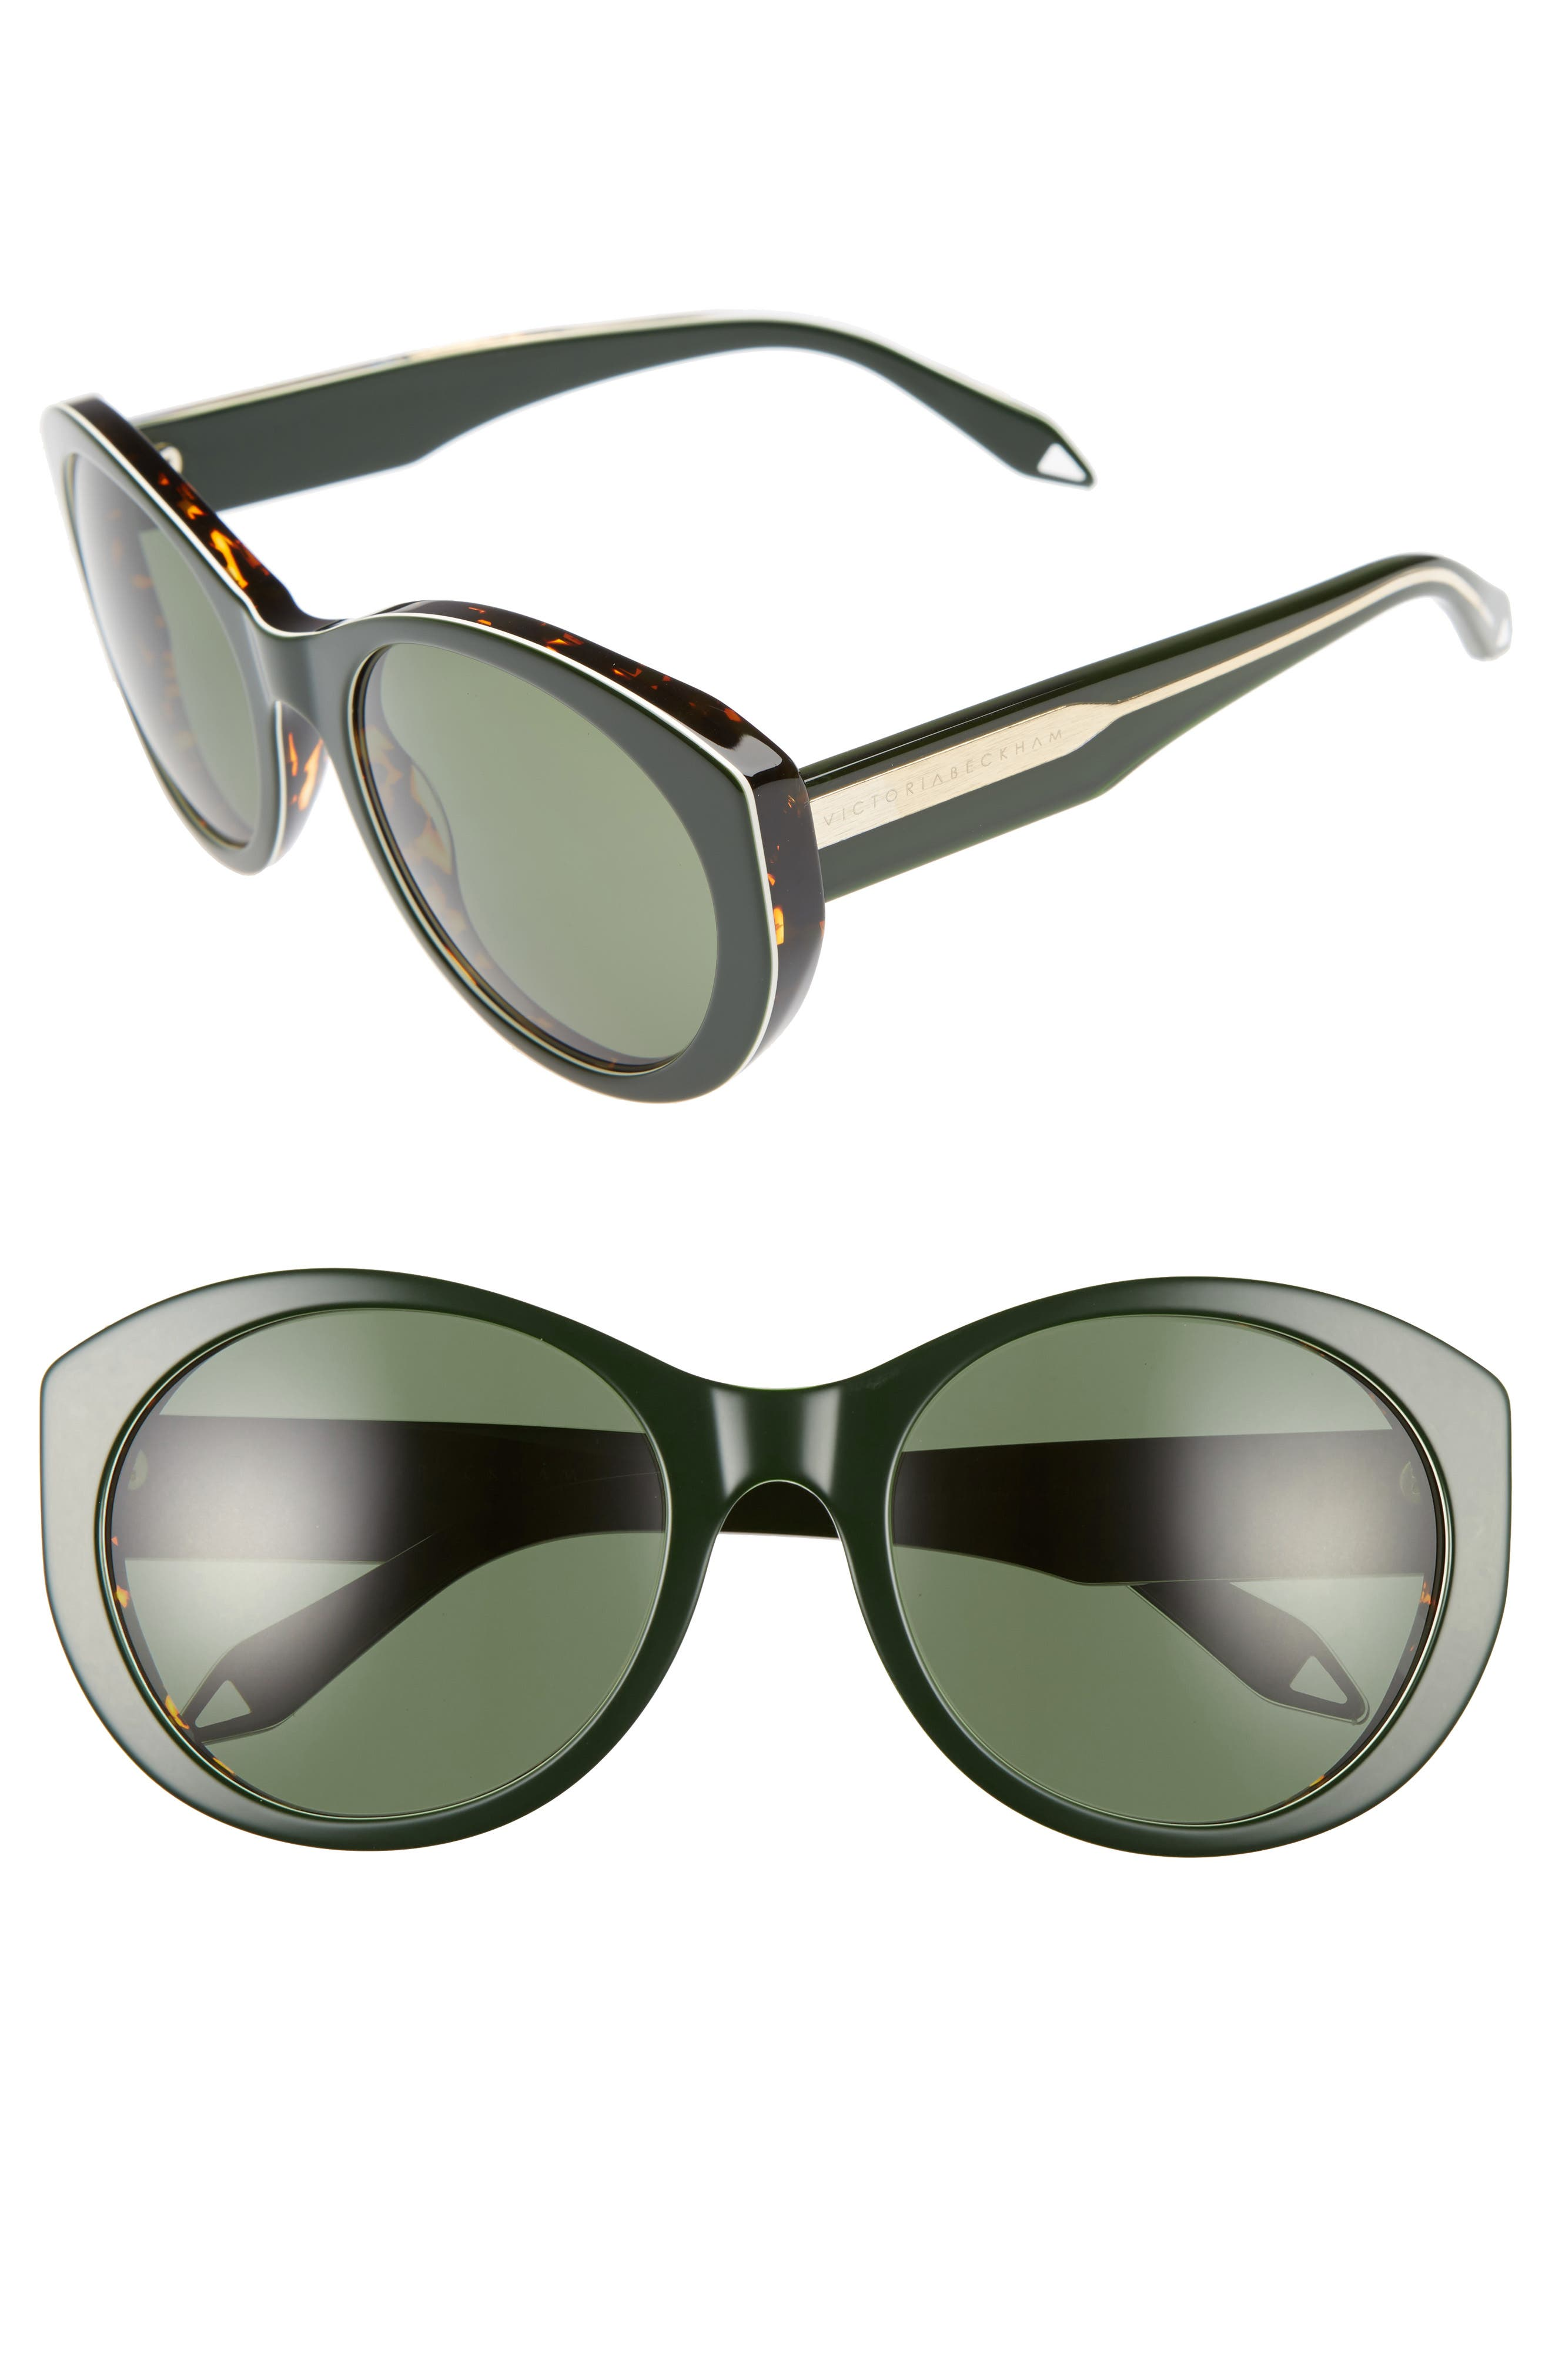 Victoria Beckham Fine Oval 59mm Sunglasses